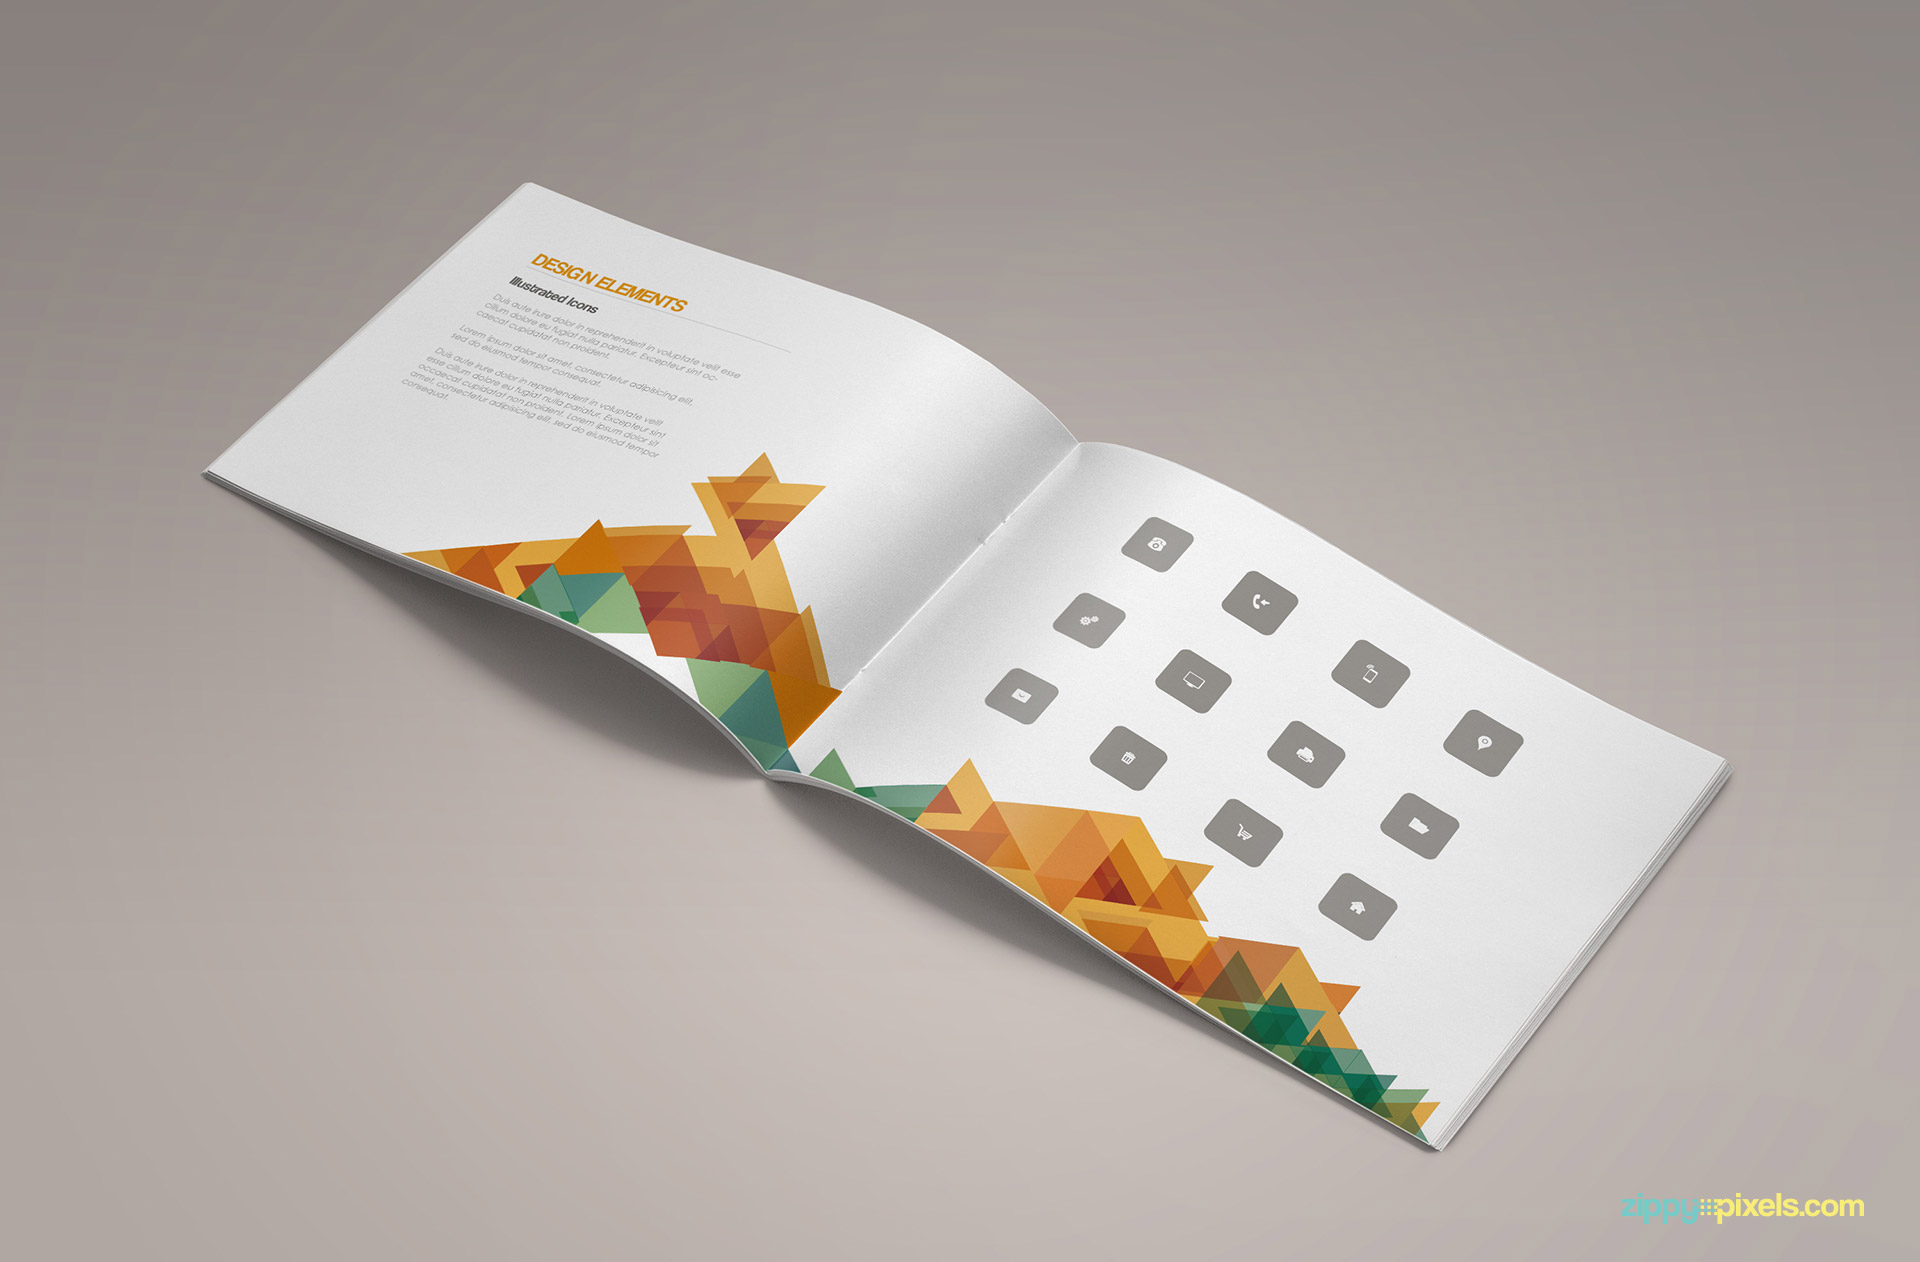 19-brand-book-9-design-elements